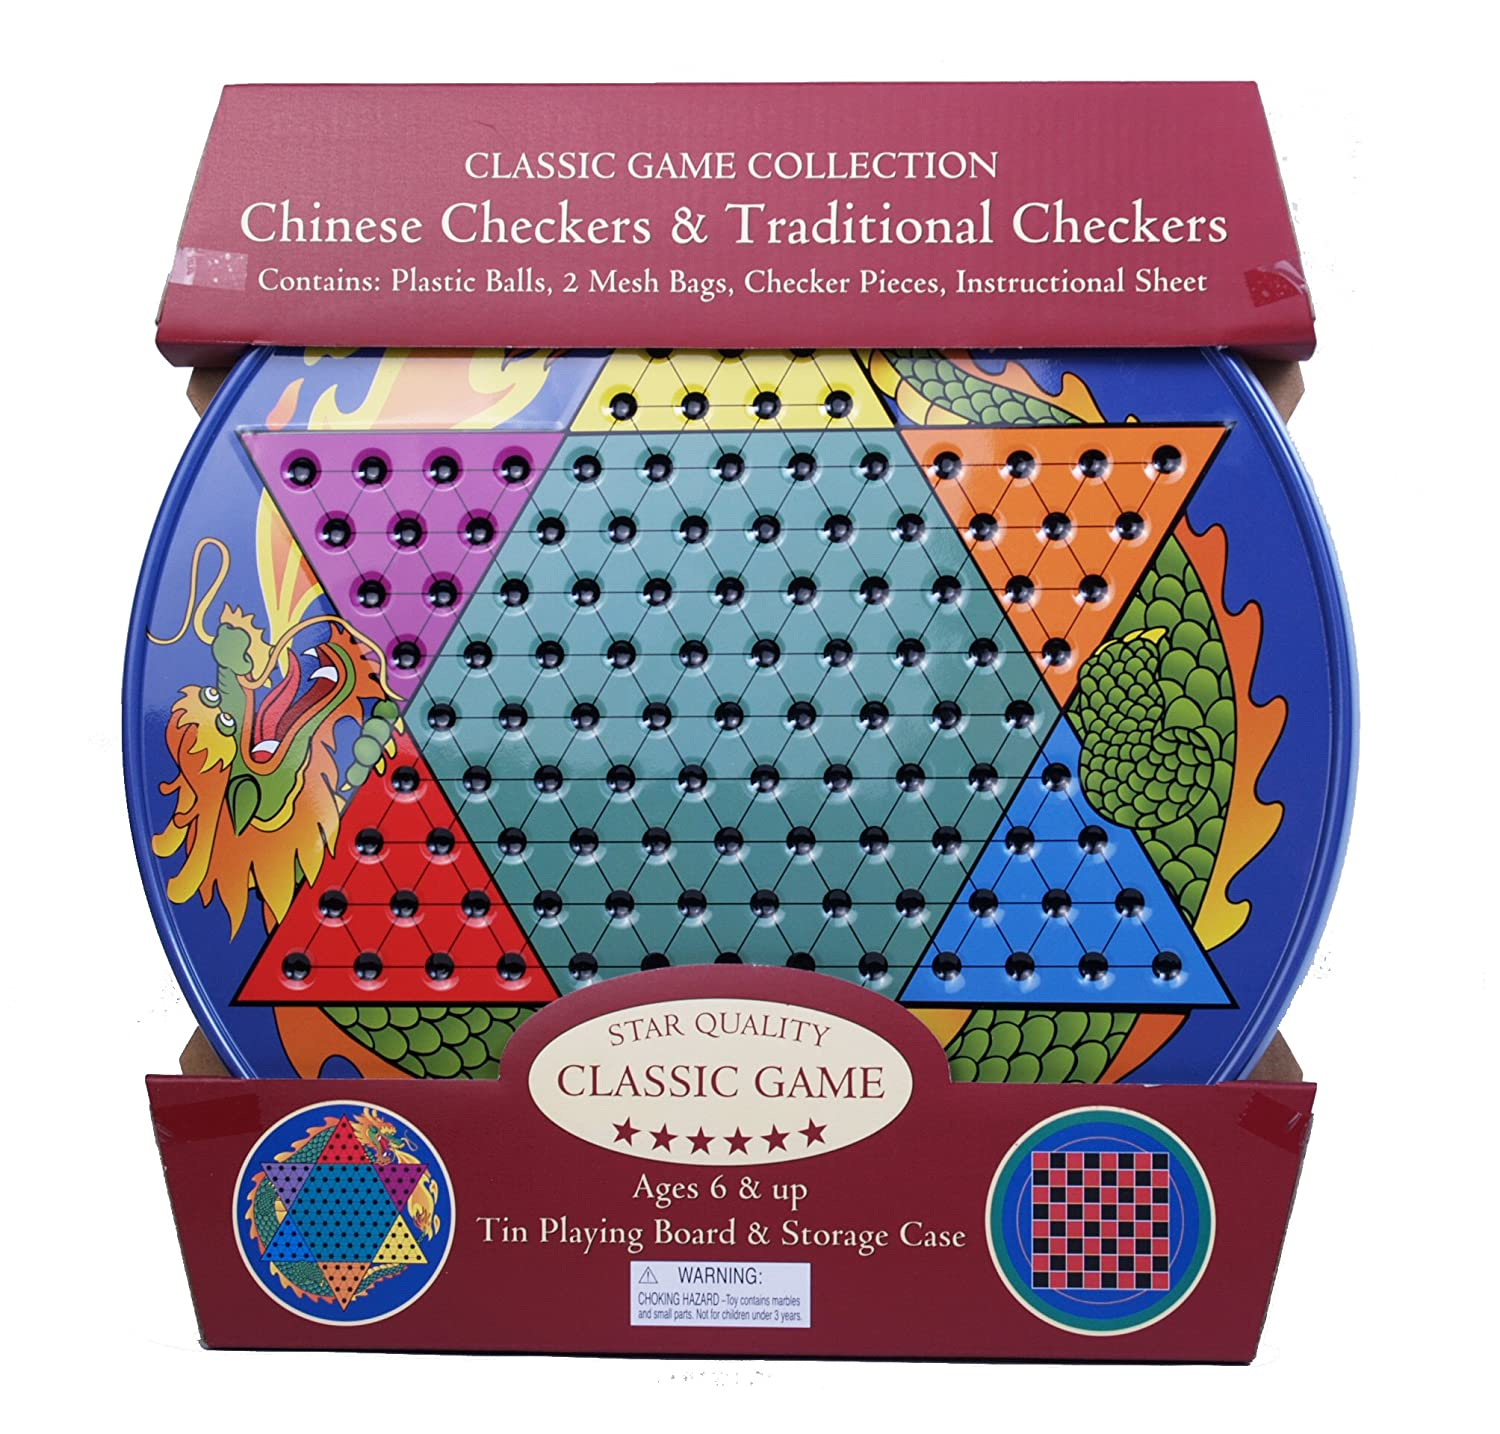 Amazon.com: Chinese Checkers and Traditional Checkers: Toys & Games